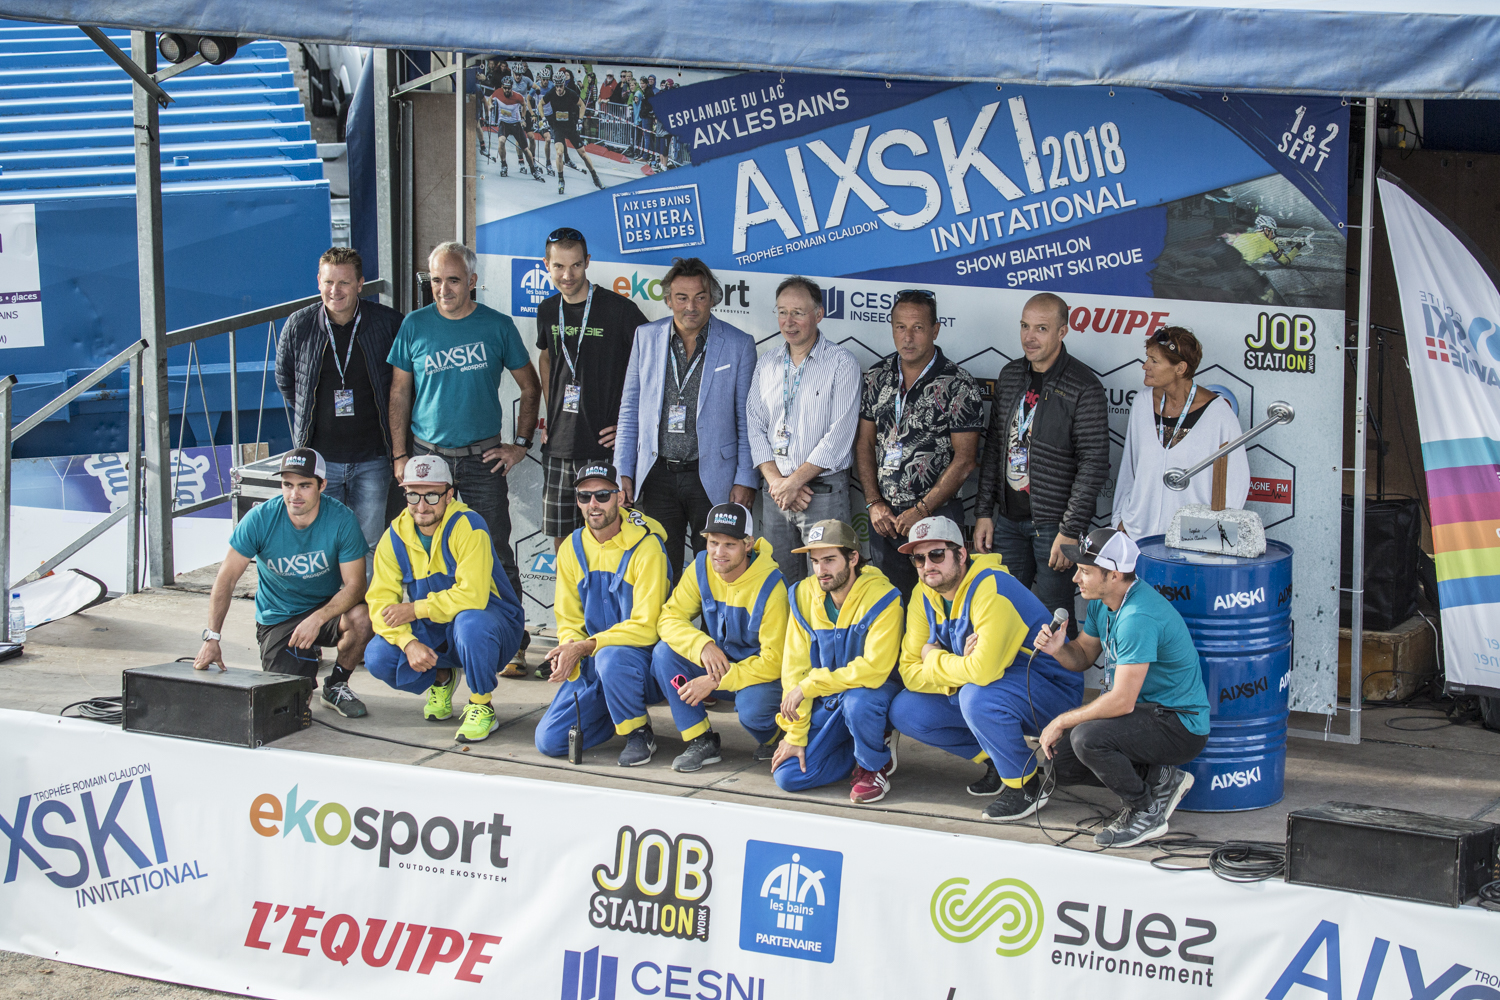 Aix Ski Invitational 2018 (3)